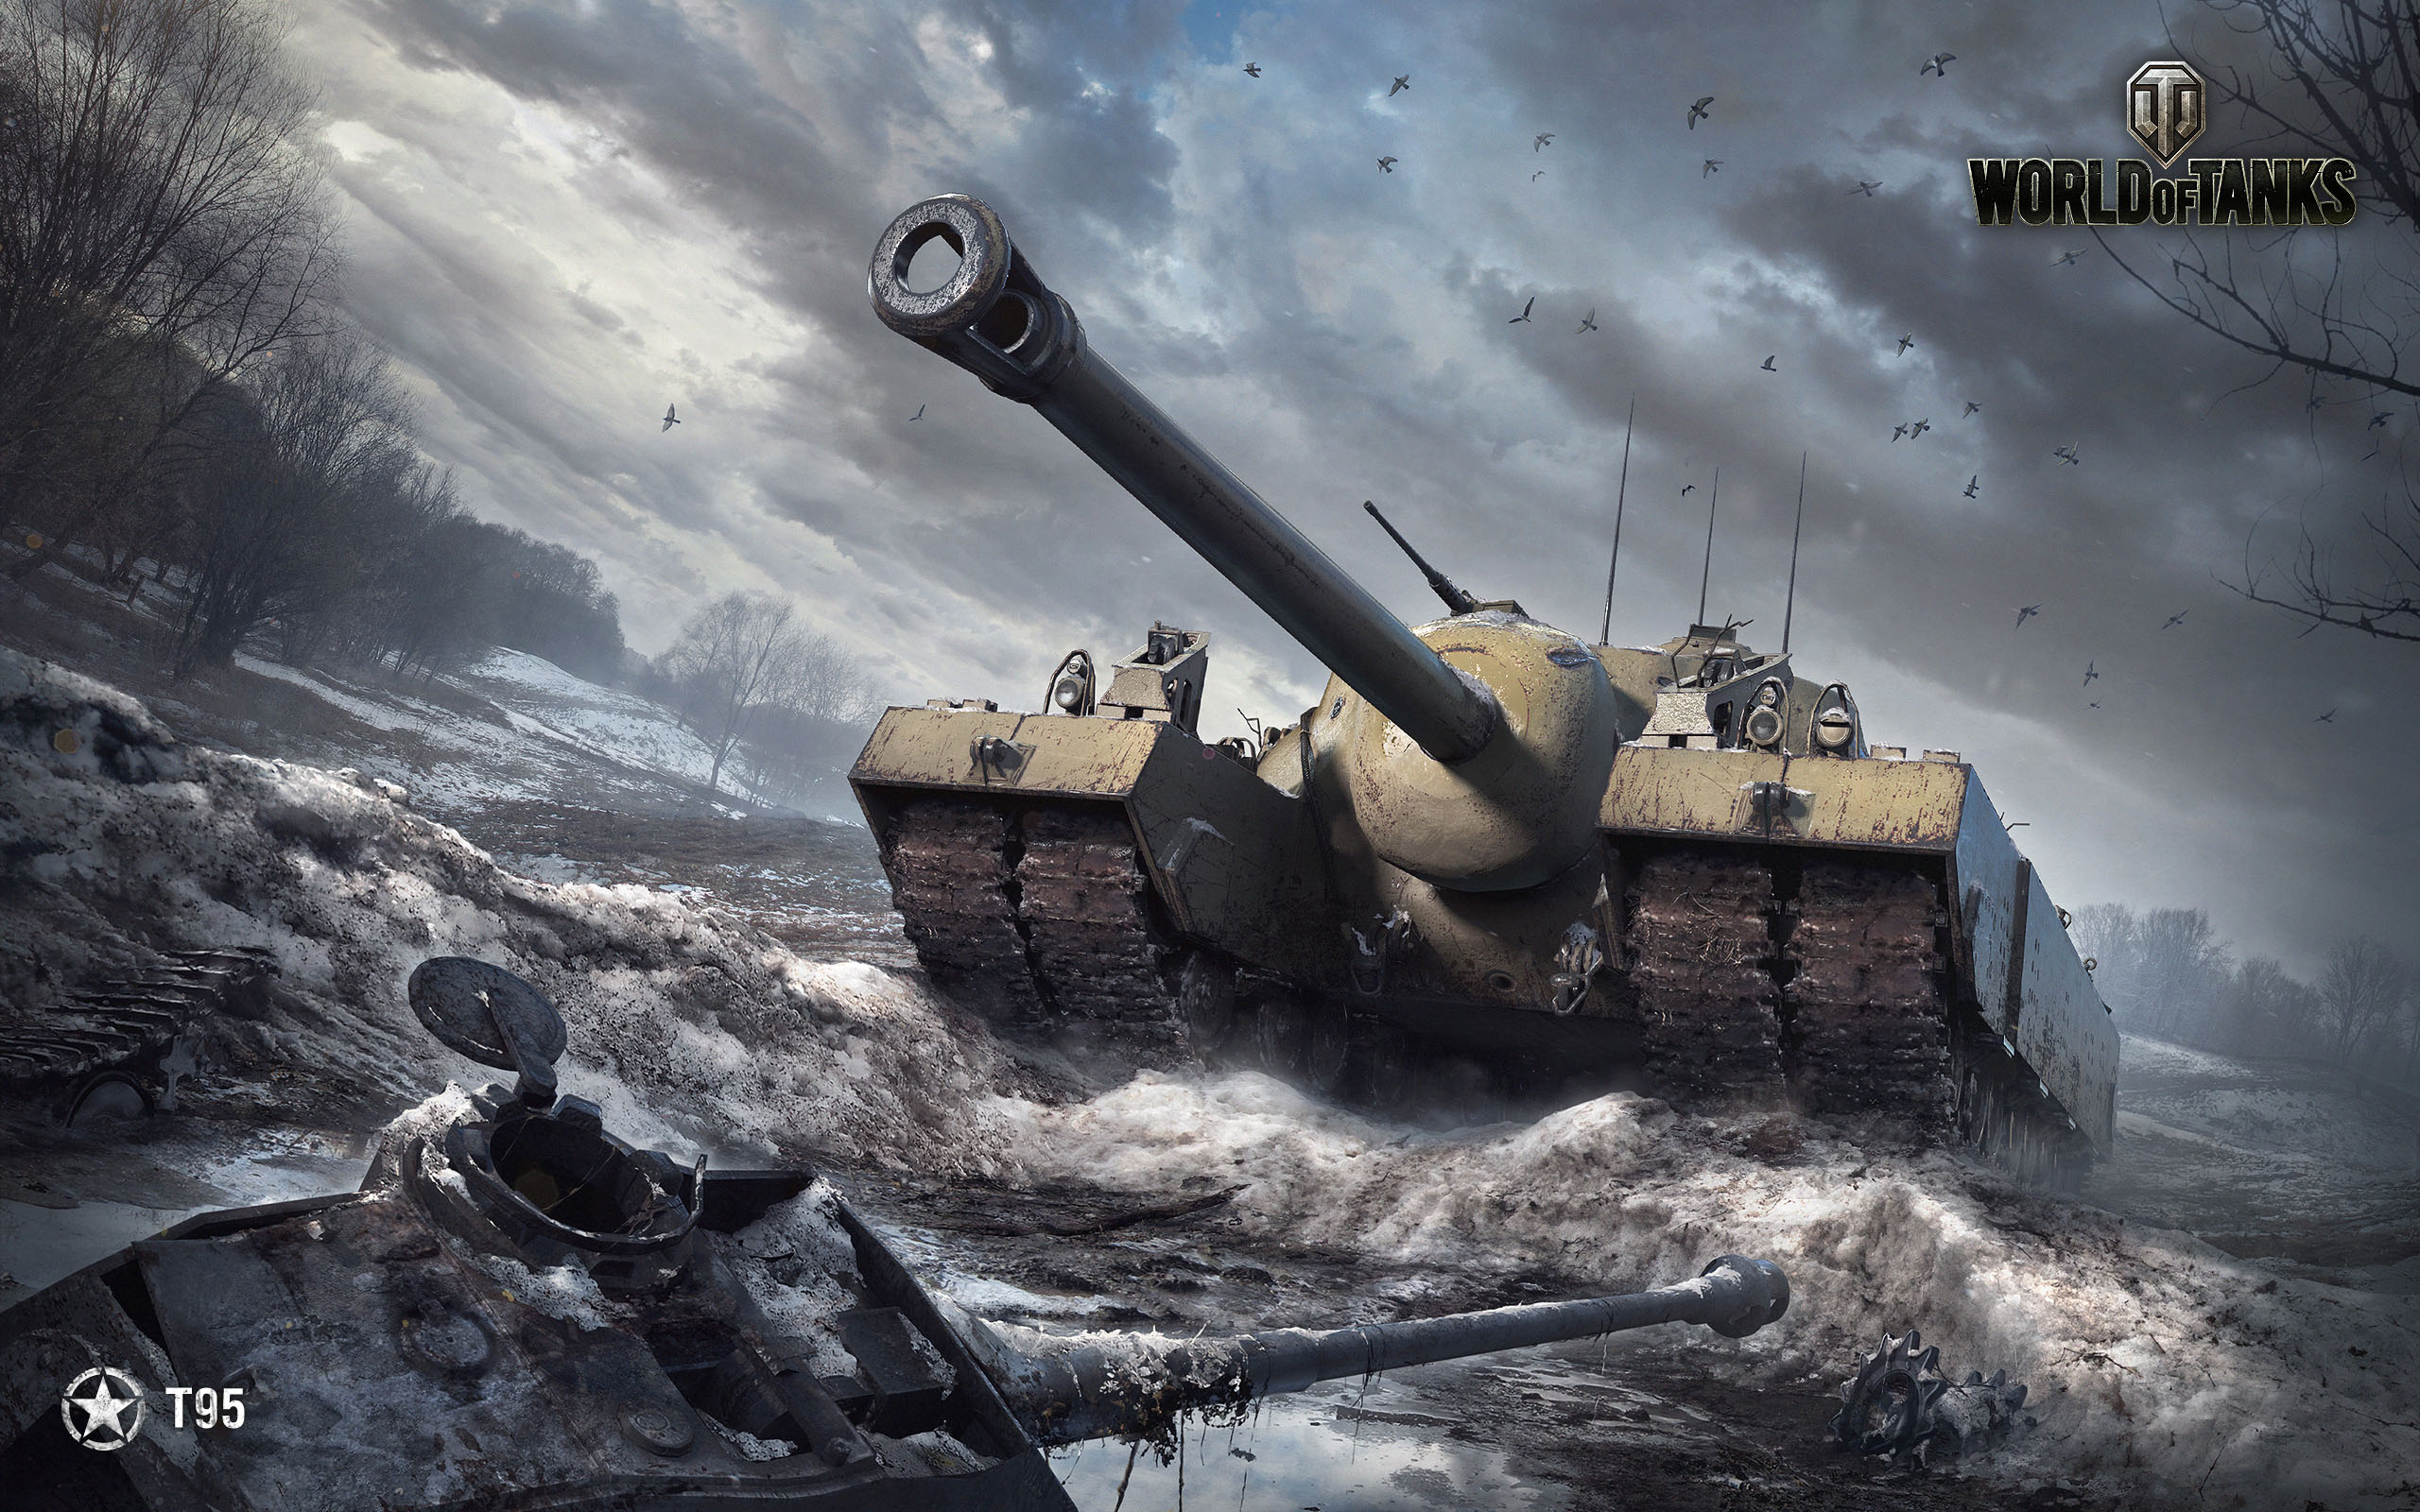 Wallpaper For March 2015 General News World Of Tanks